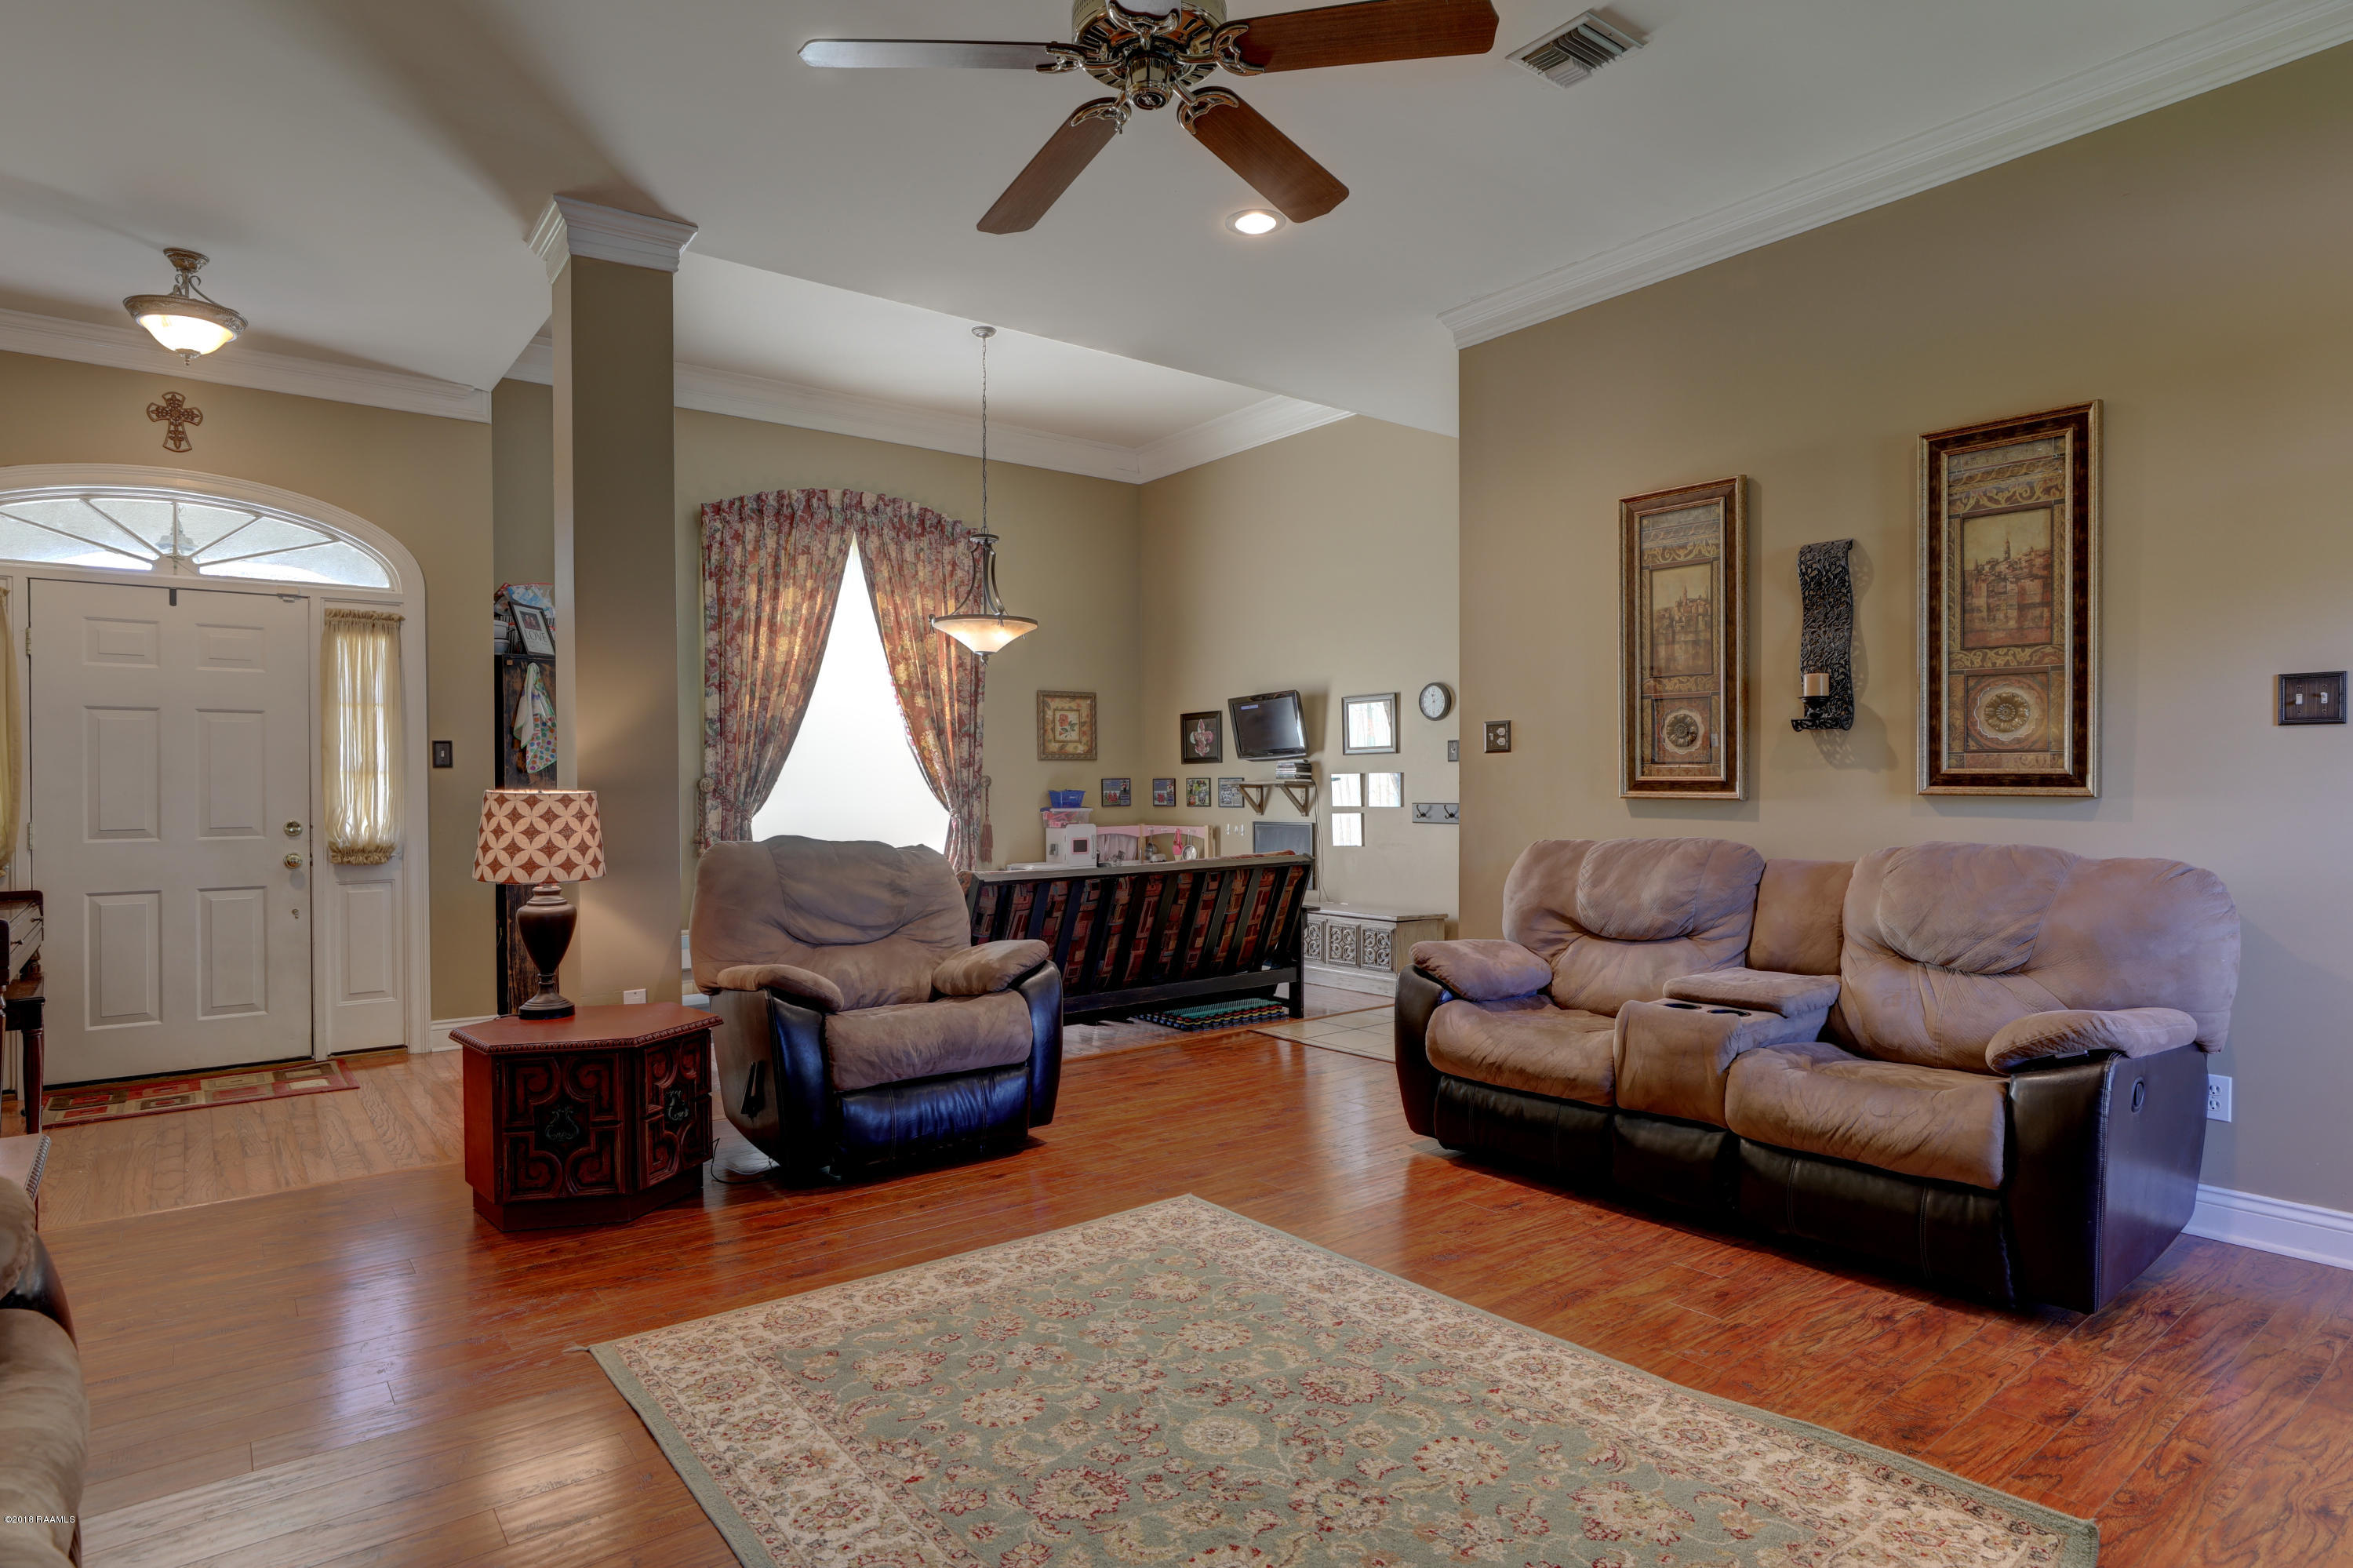 105 Gravenhage Circle, Youngsville, LA 70592 Photo #17